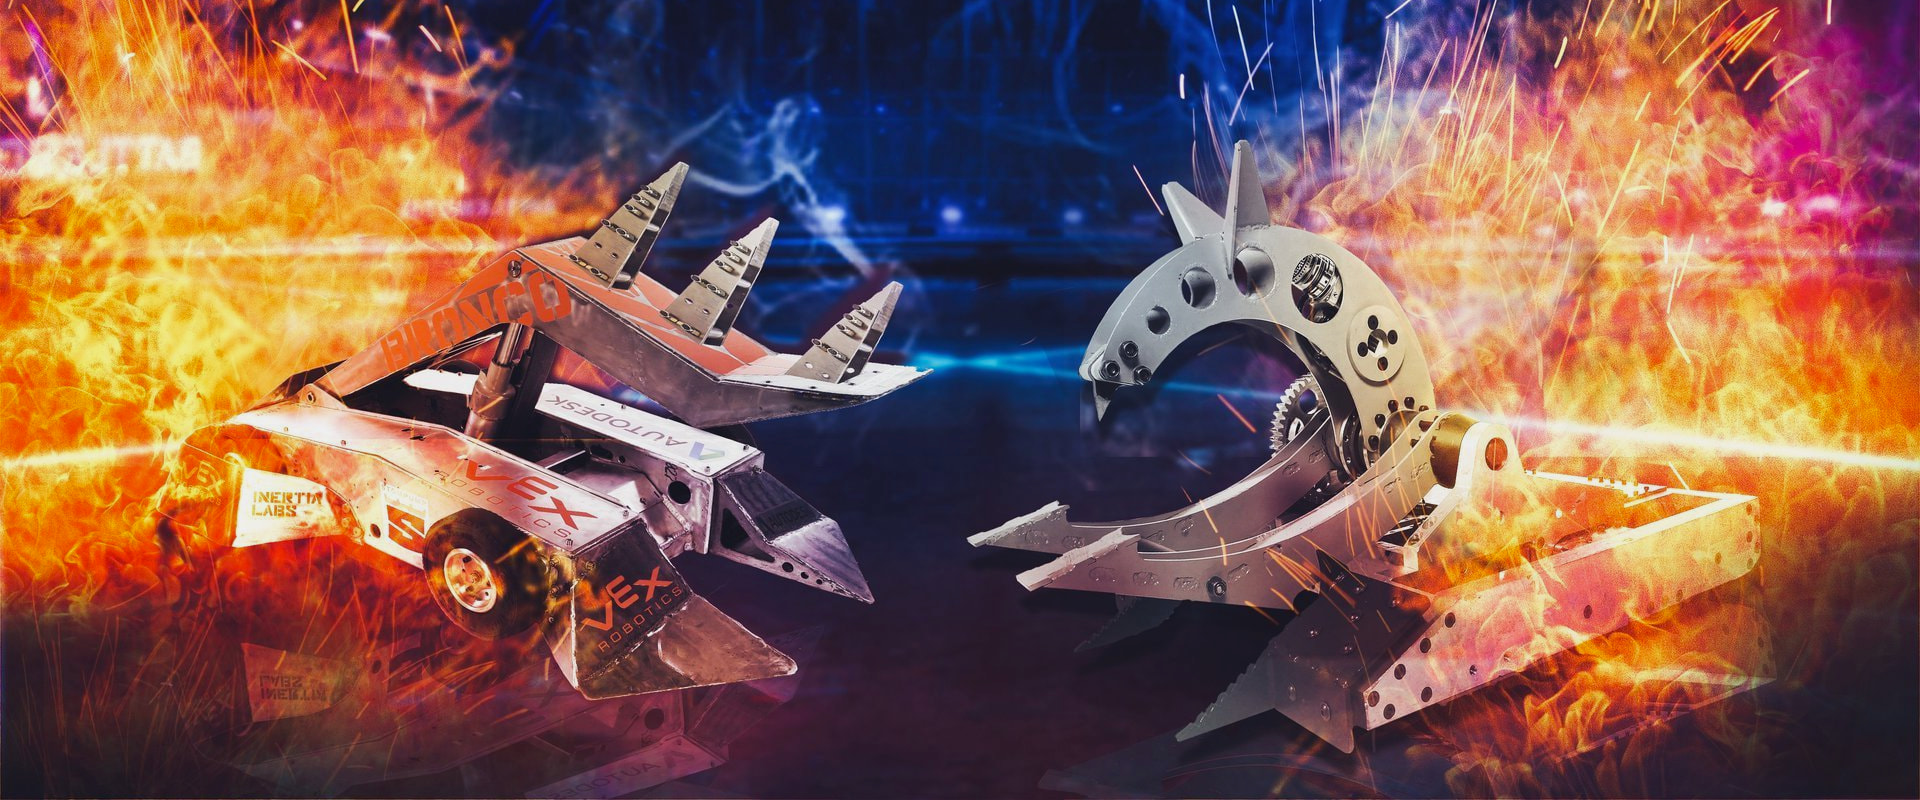 BattleBots on Discovery